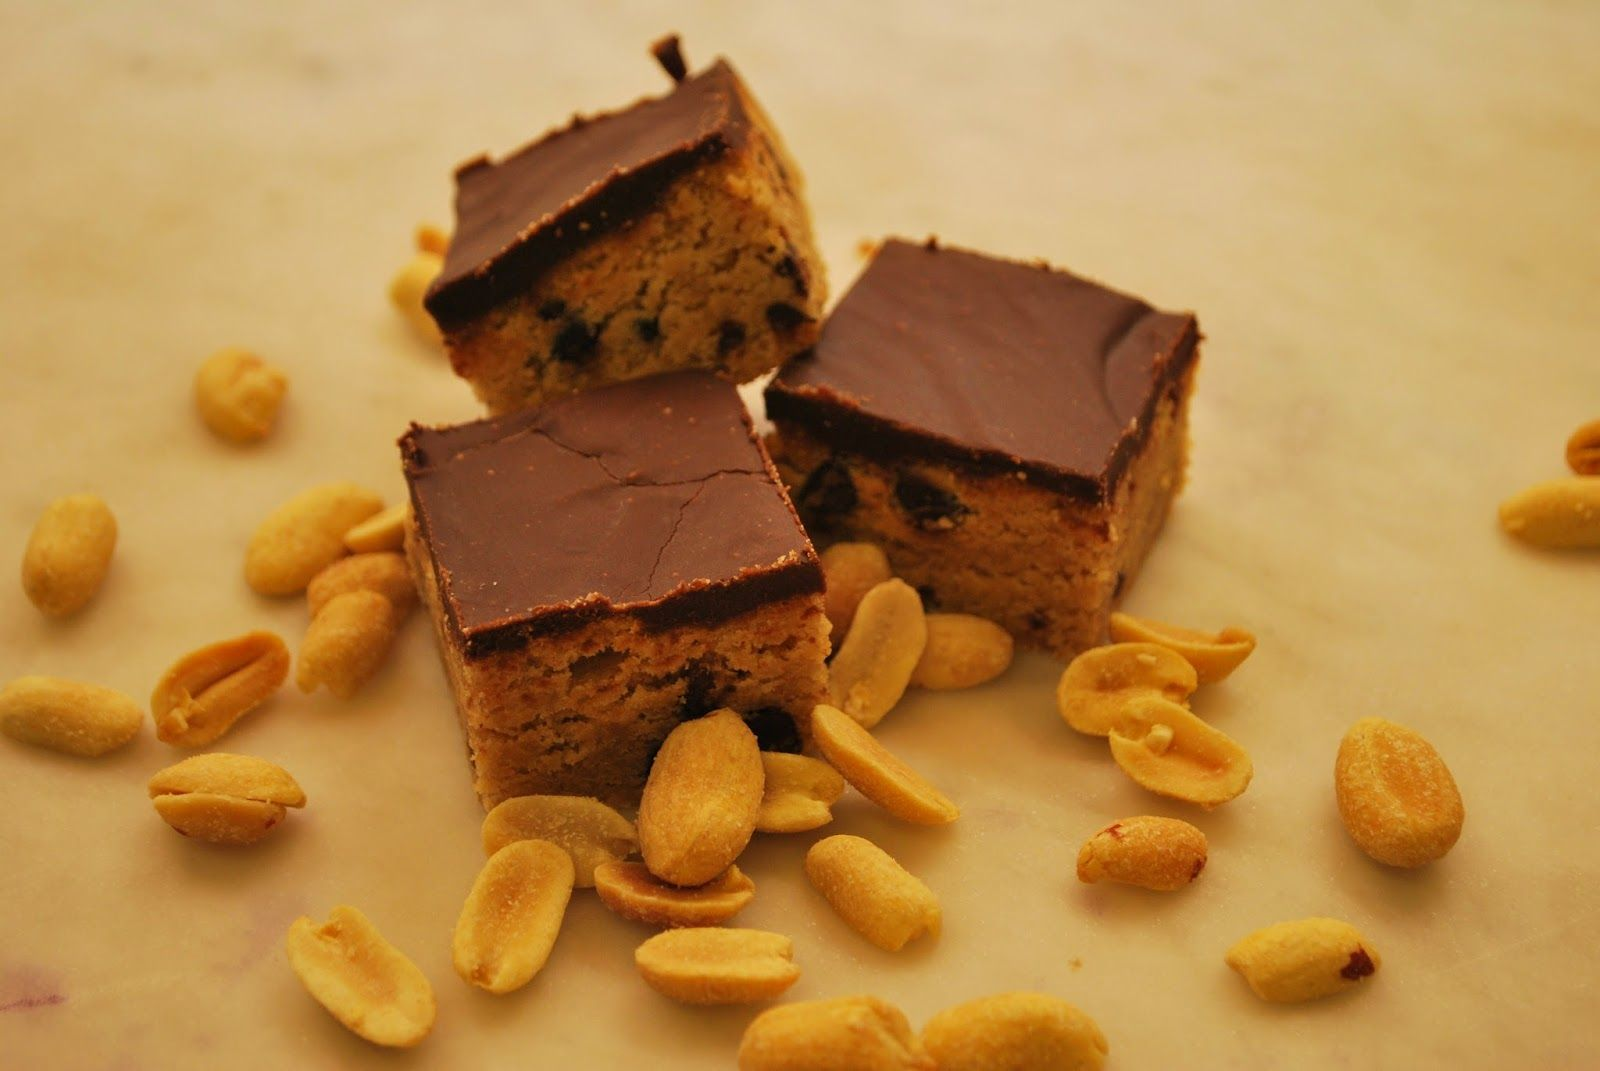 Peanut Butter Chocolate Chip Blondies (adapted from Smitten Kitchen)